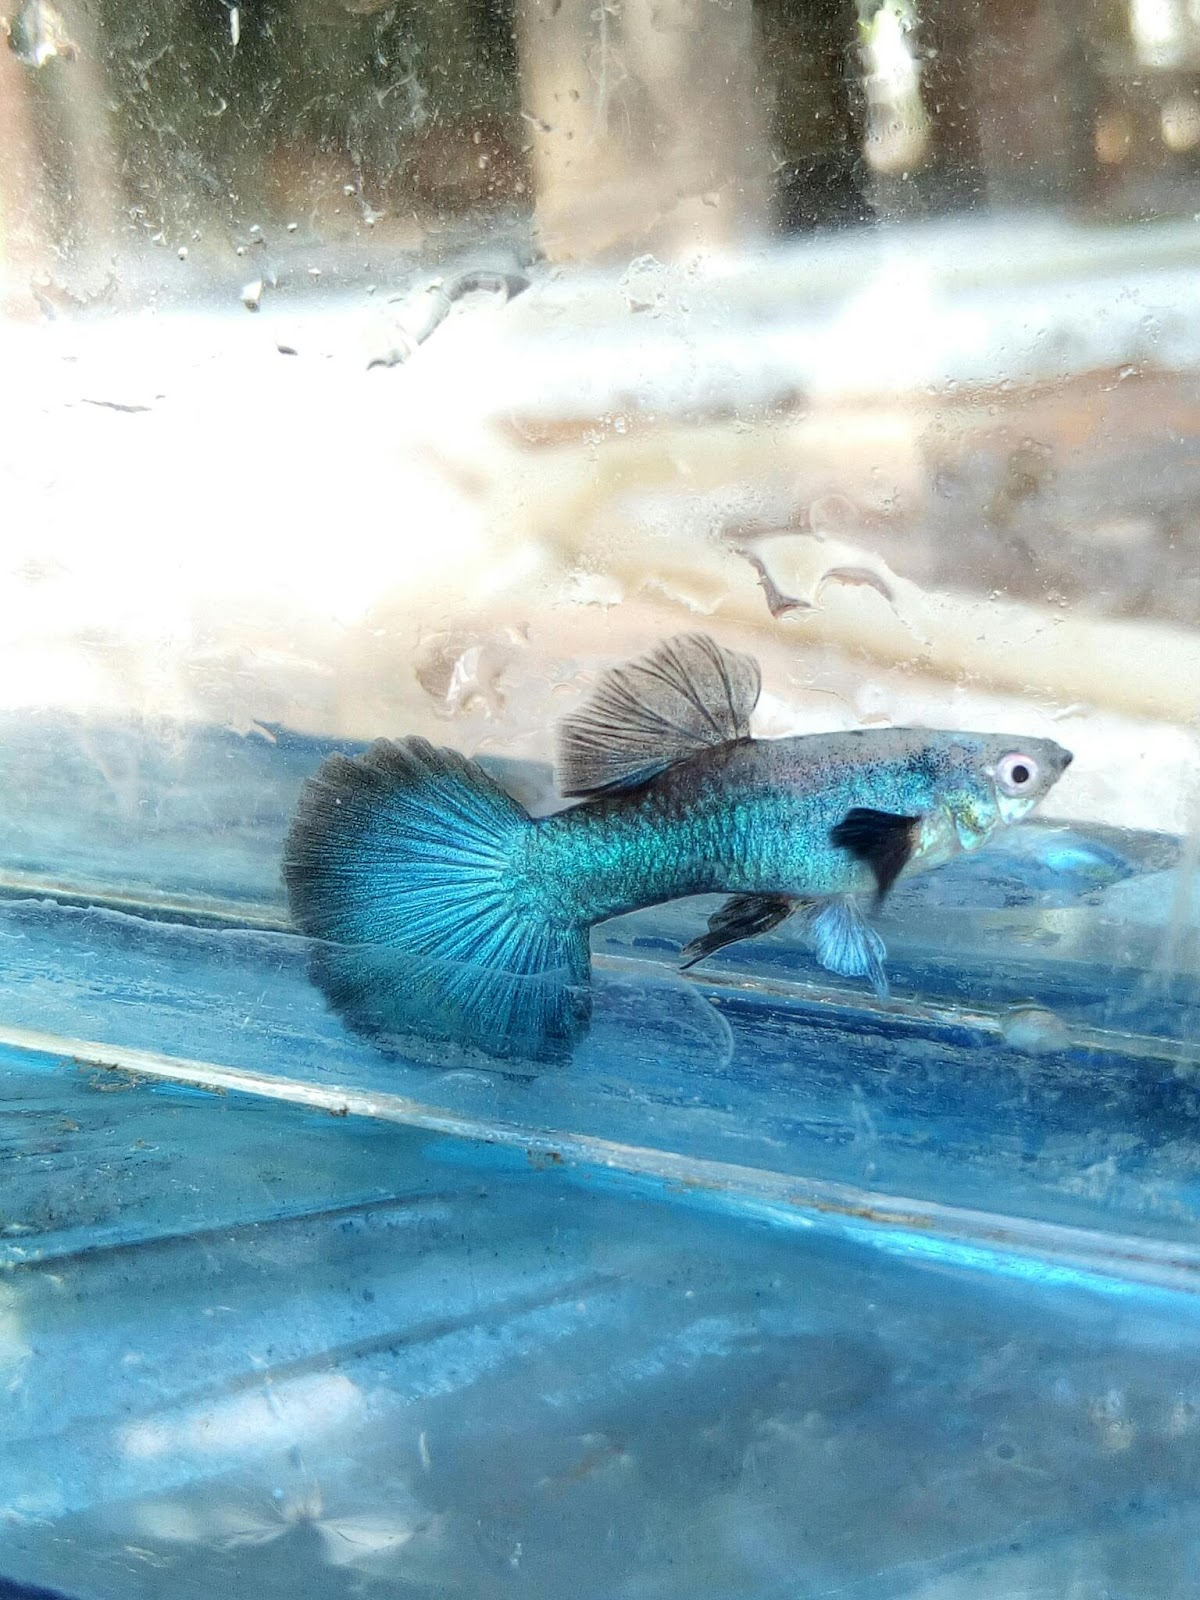 Closed Auction Fwguppies1541475612 1 Pair Asian 101 Ikan Hias Air Or Refund Excluding Shipping Cost But Clear Photos With Unopened Bag Of The Death Fish Must Be Attached Back Within 24 Hours After Arrival